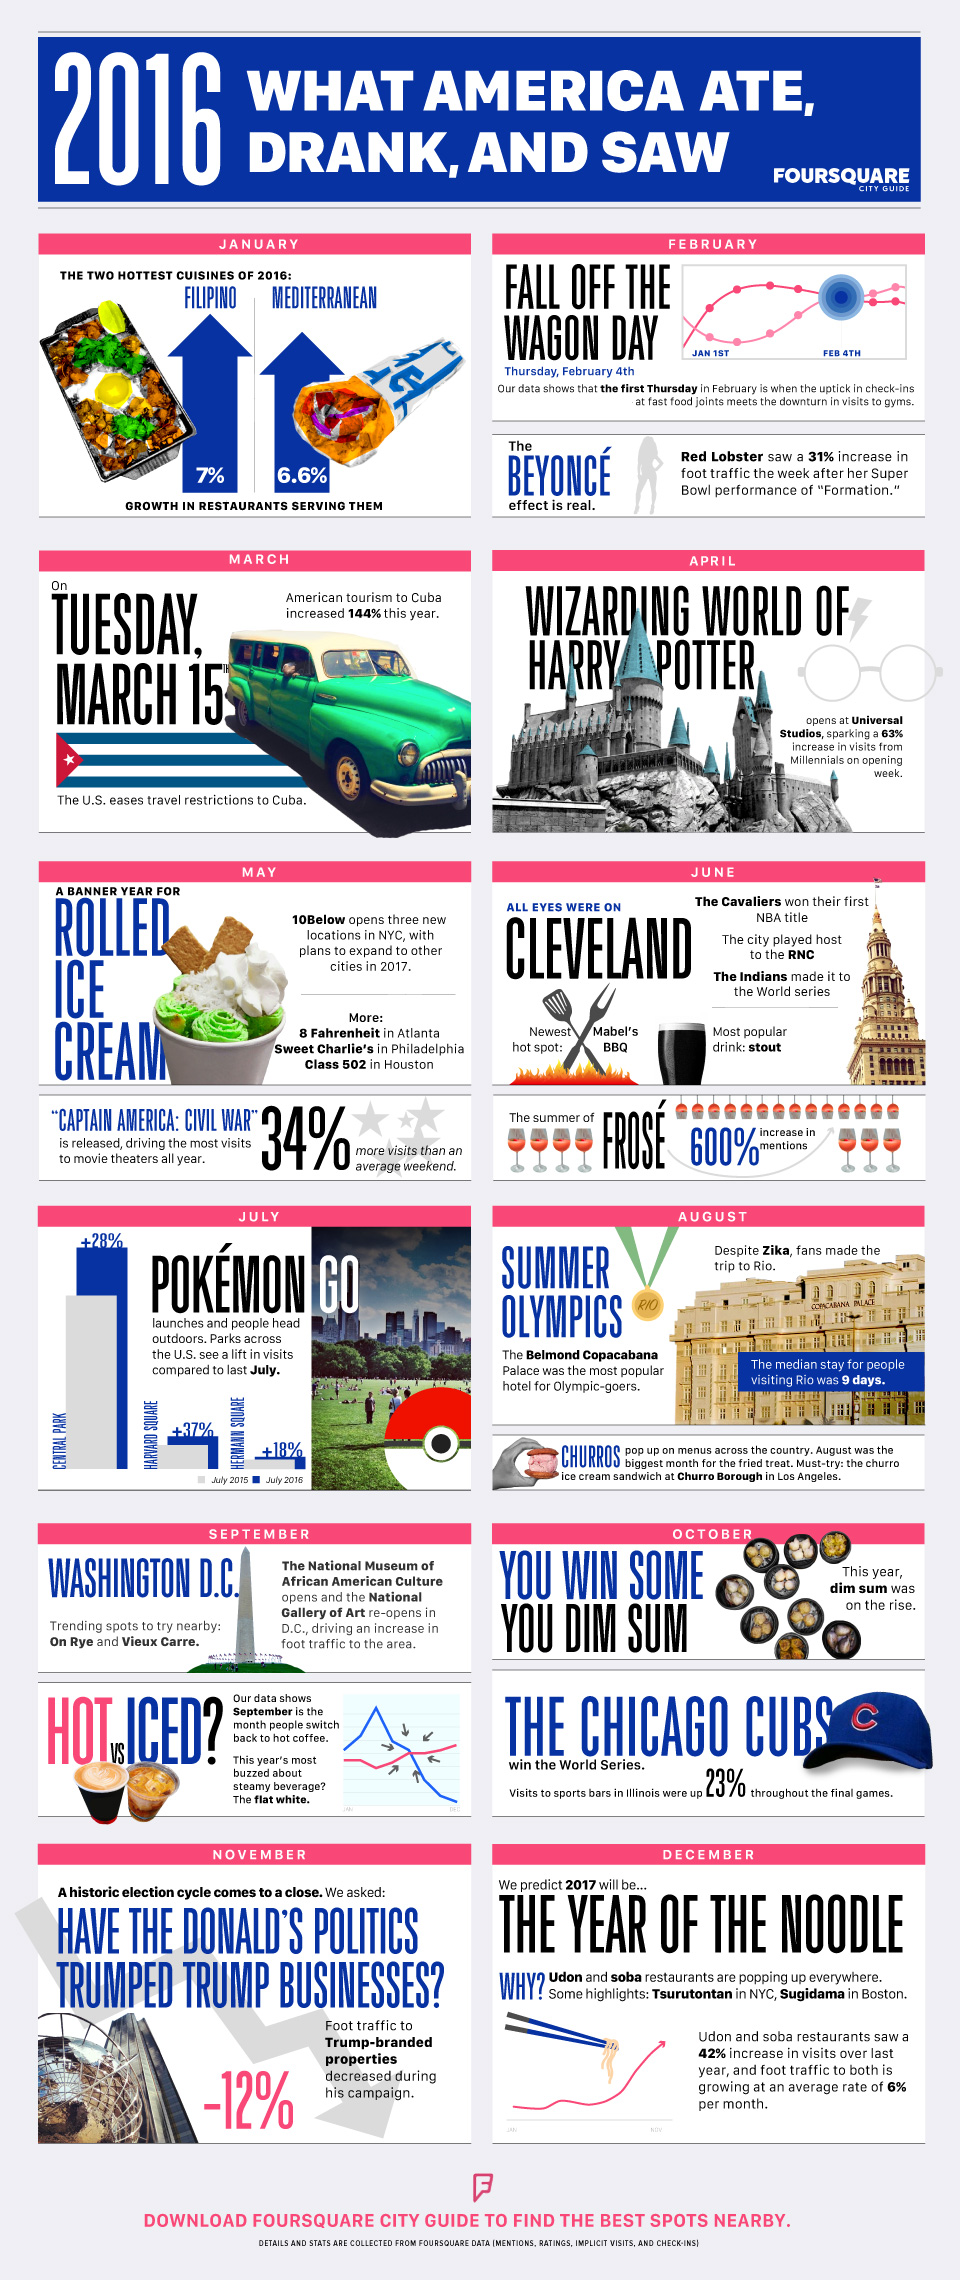 Food And Entertainment Trends Of America in 2016 - Infographic